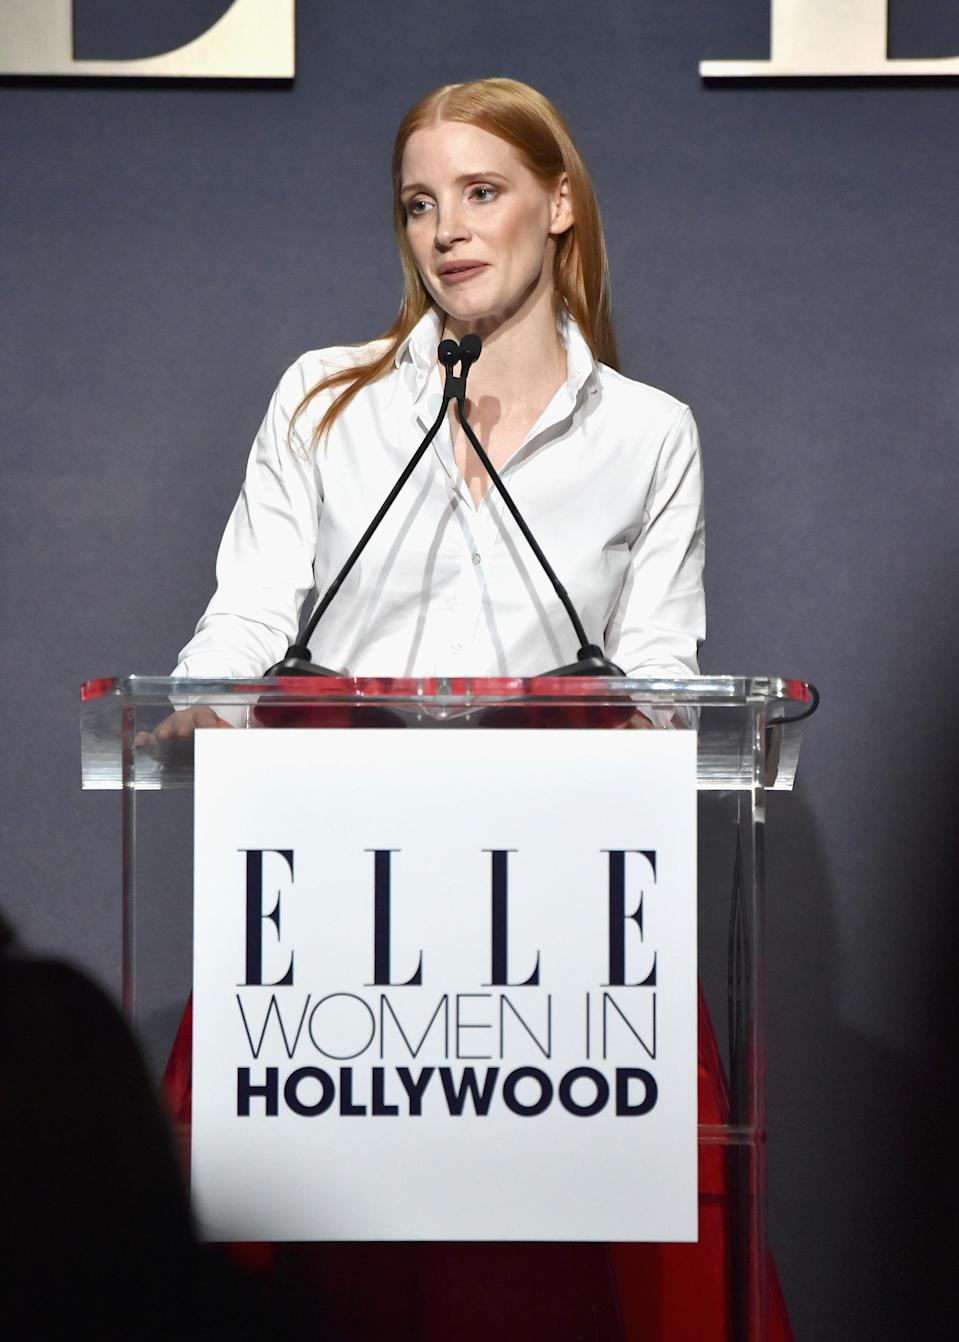 Jessica Chastain speaks at the <em>Elle</em> Women in Hollywood Awards in L.A. on Oct. 16, 2017. (Photo: Getty Images)